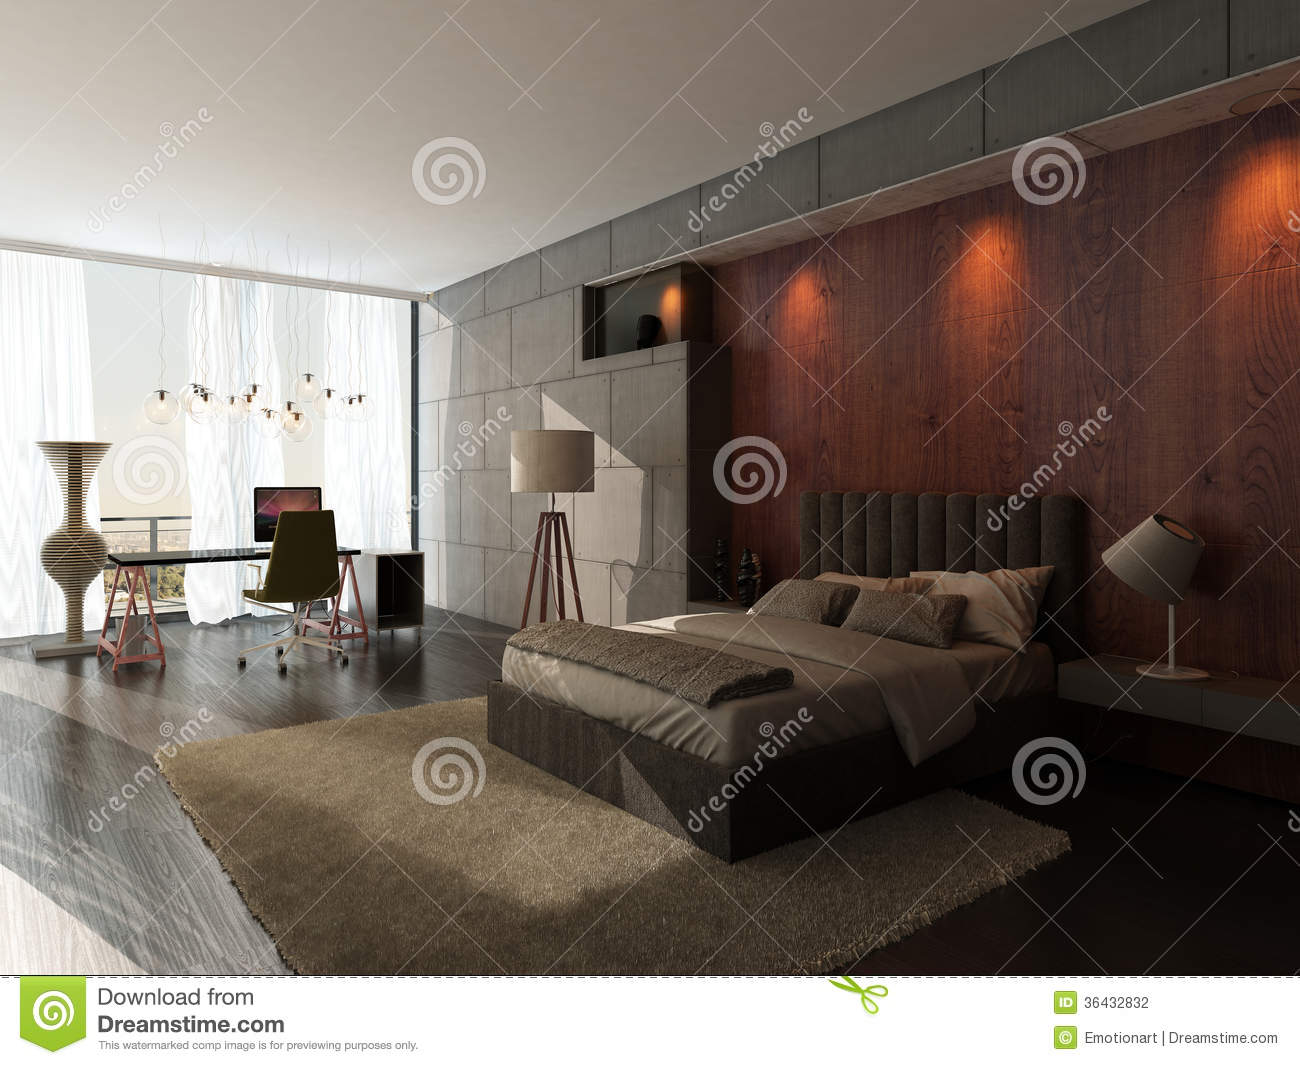 Modern Design Bedroom Interior With Wooden And Stone Wall